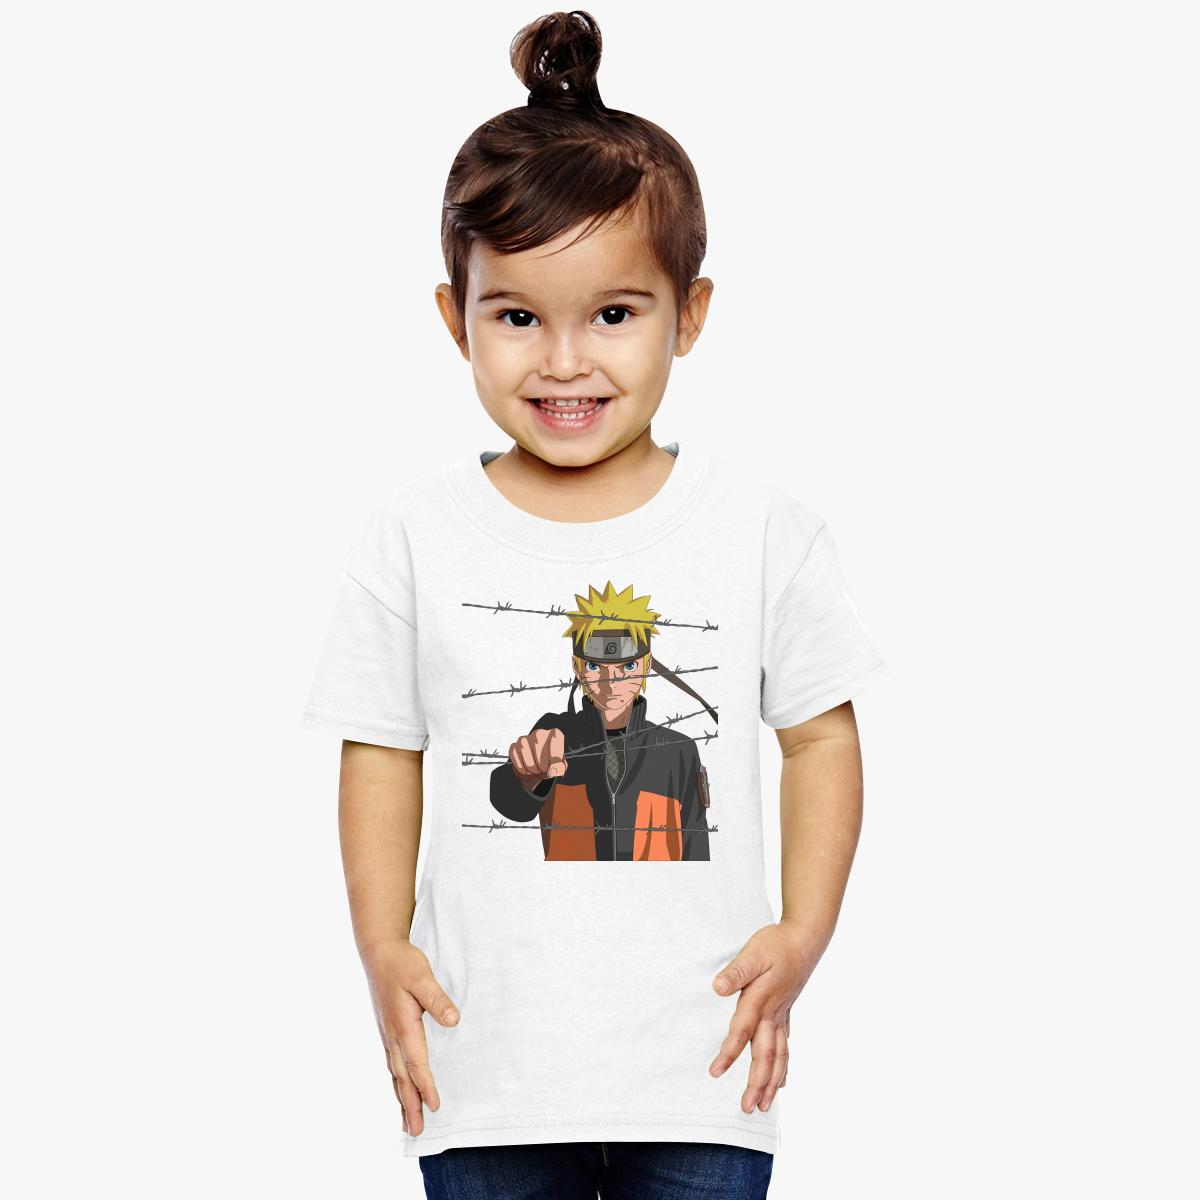 Roblox Custom Shirt Maker Chad Crowley Productions